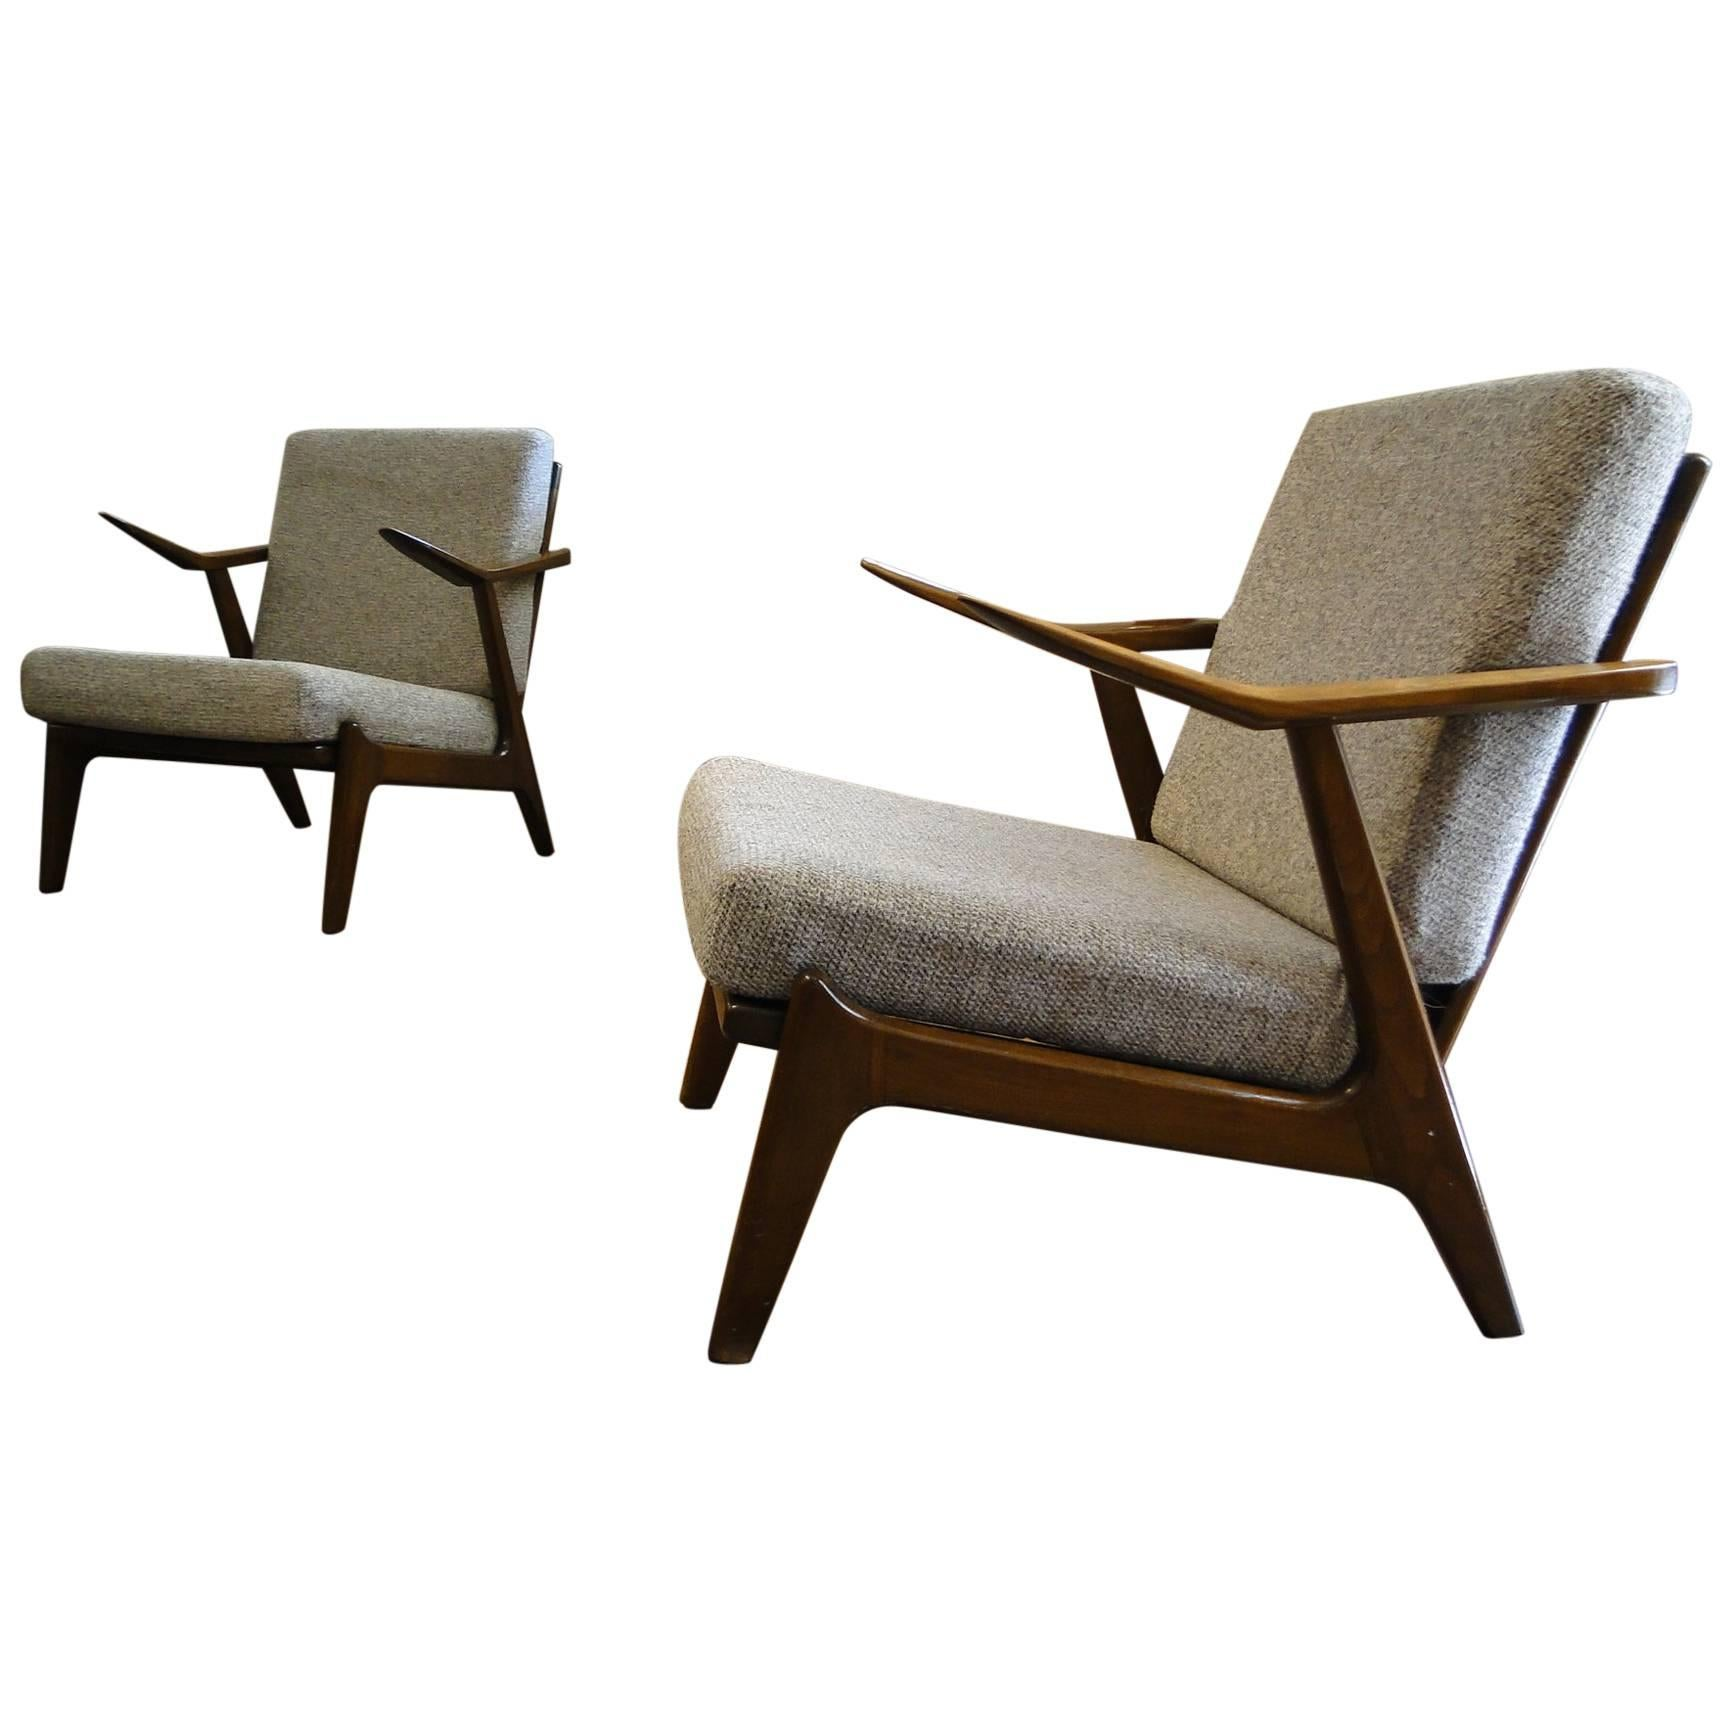 Captivating Pair Of Teak Danish Easy Chairs By H. Brockmann Petersen For Poul M. Jessen